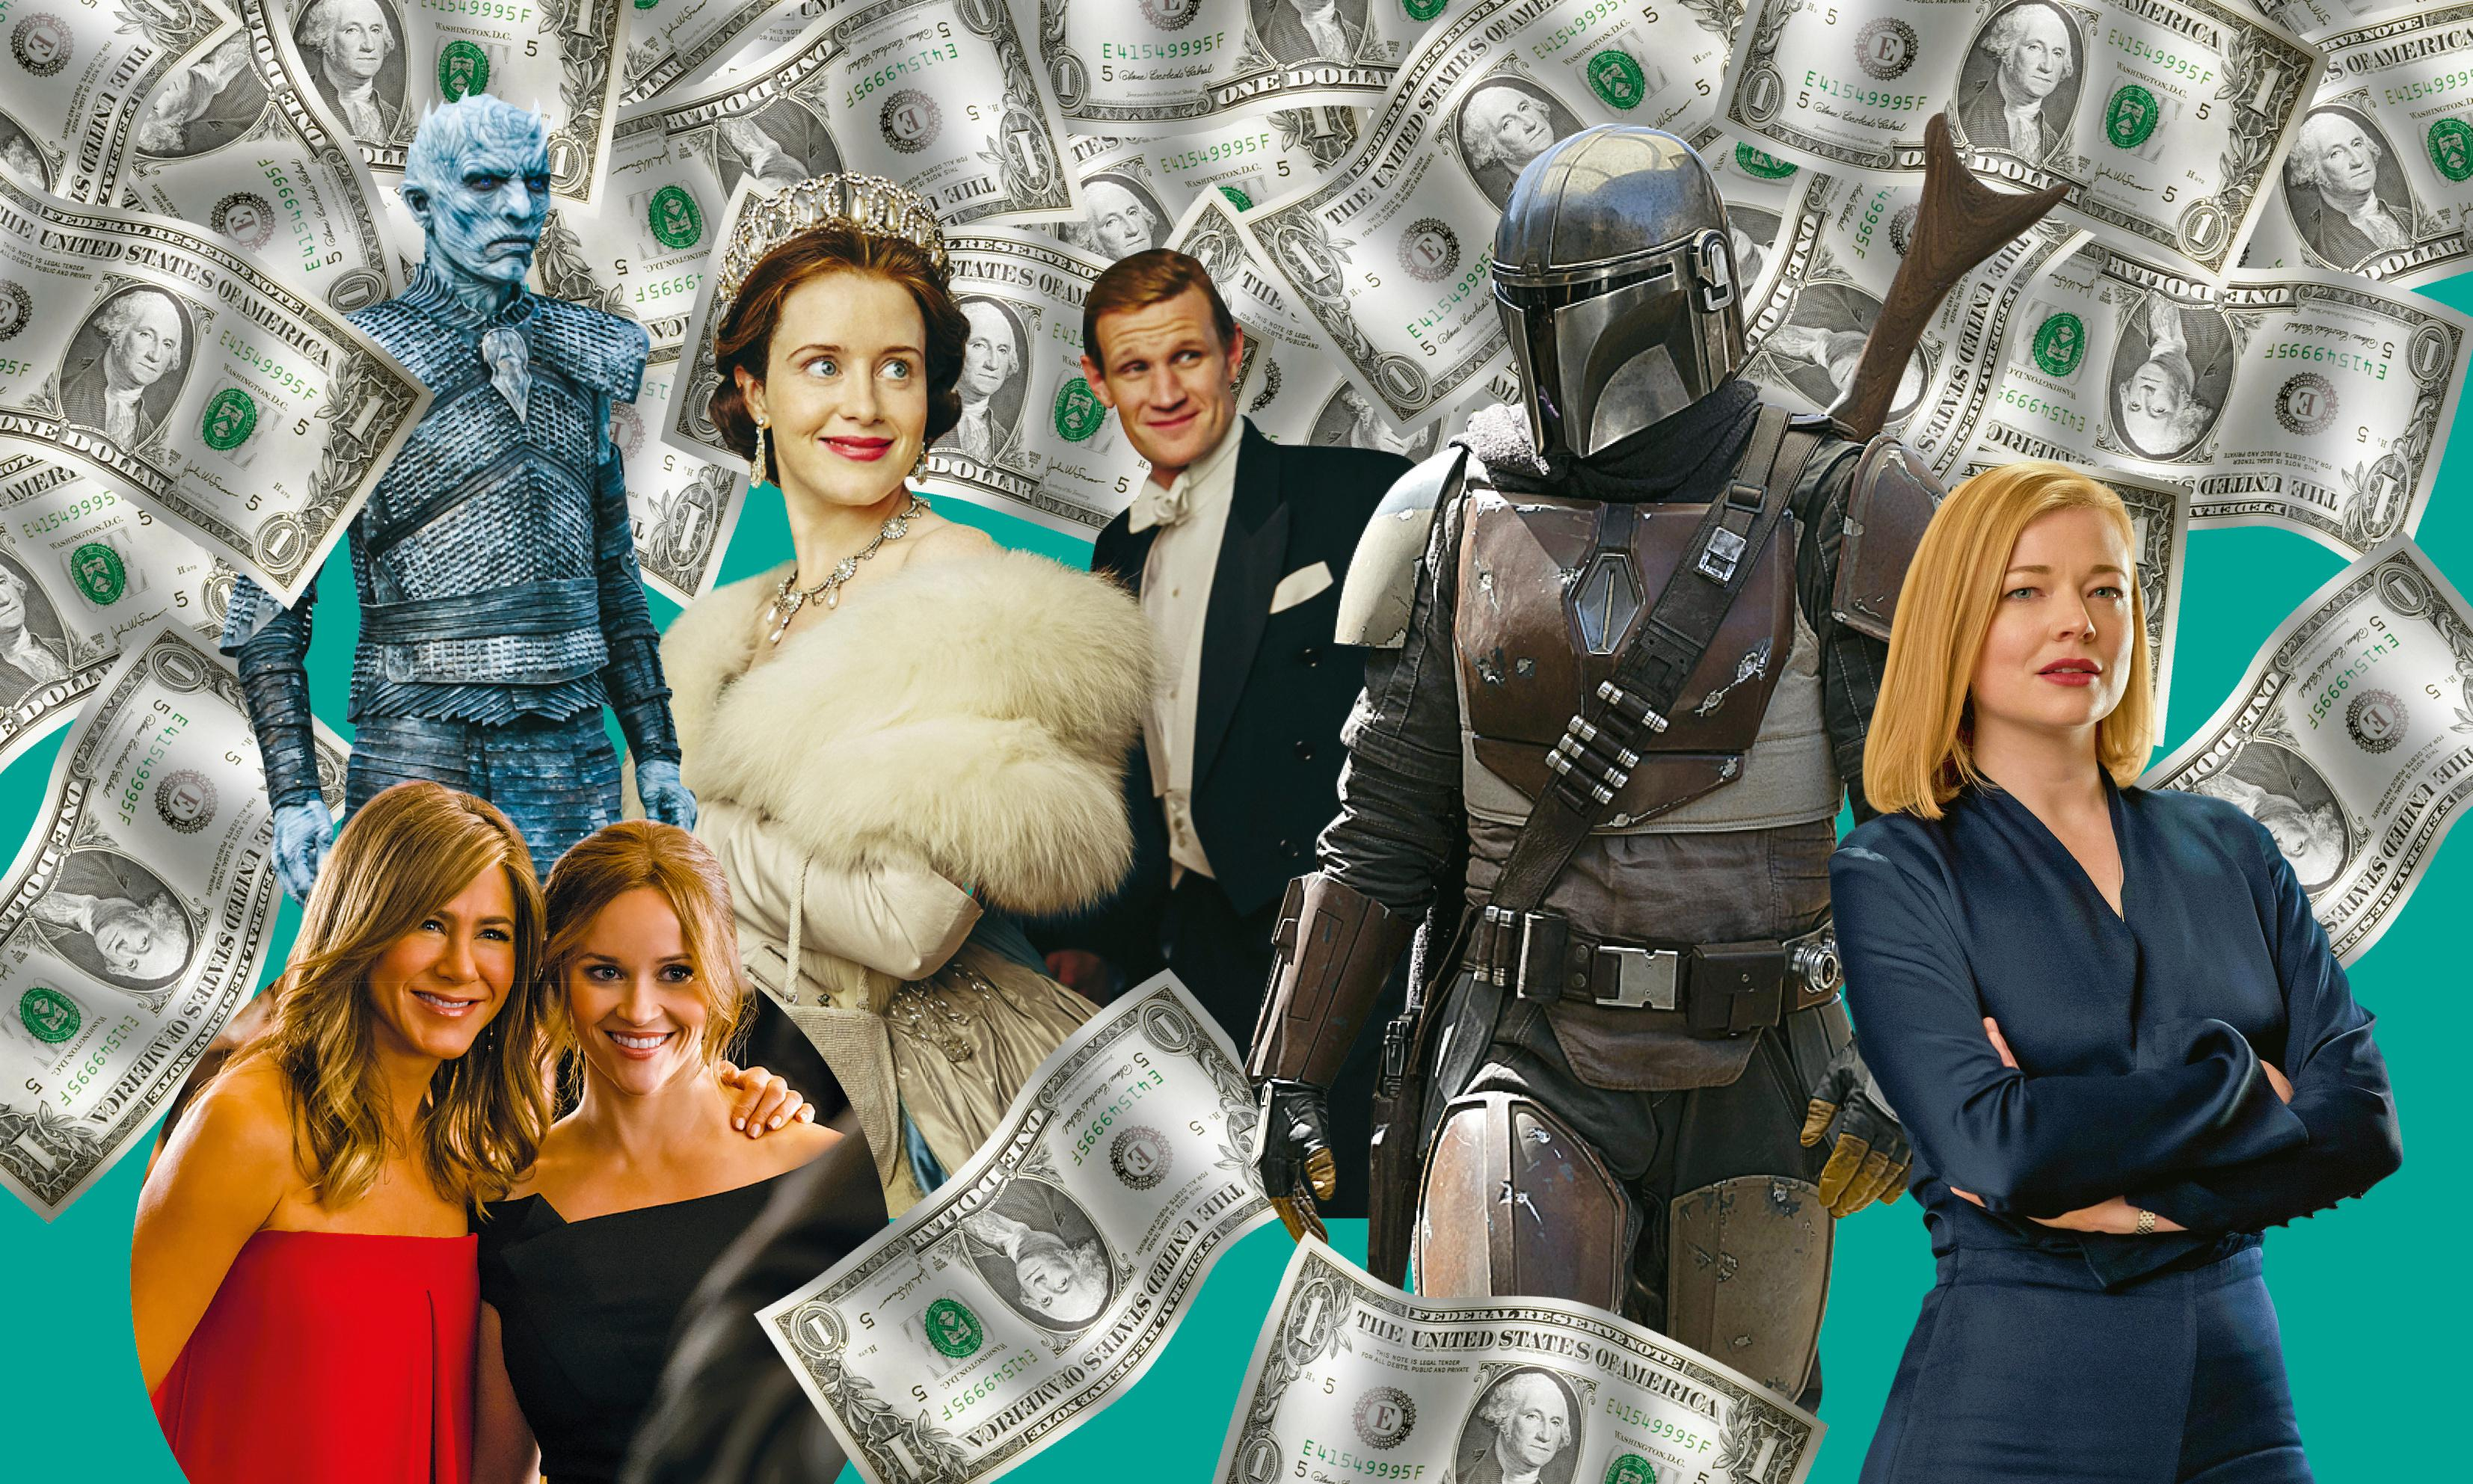 From The Crown to Game of Thrones: what's the most expensive TV show ever?